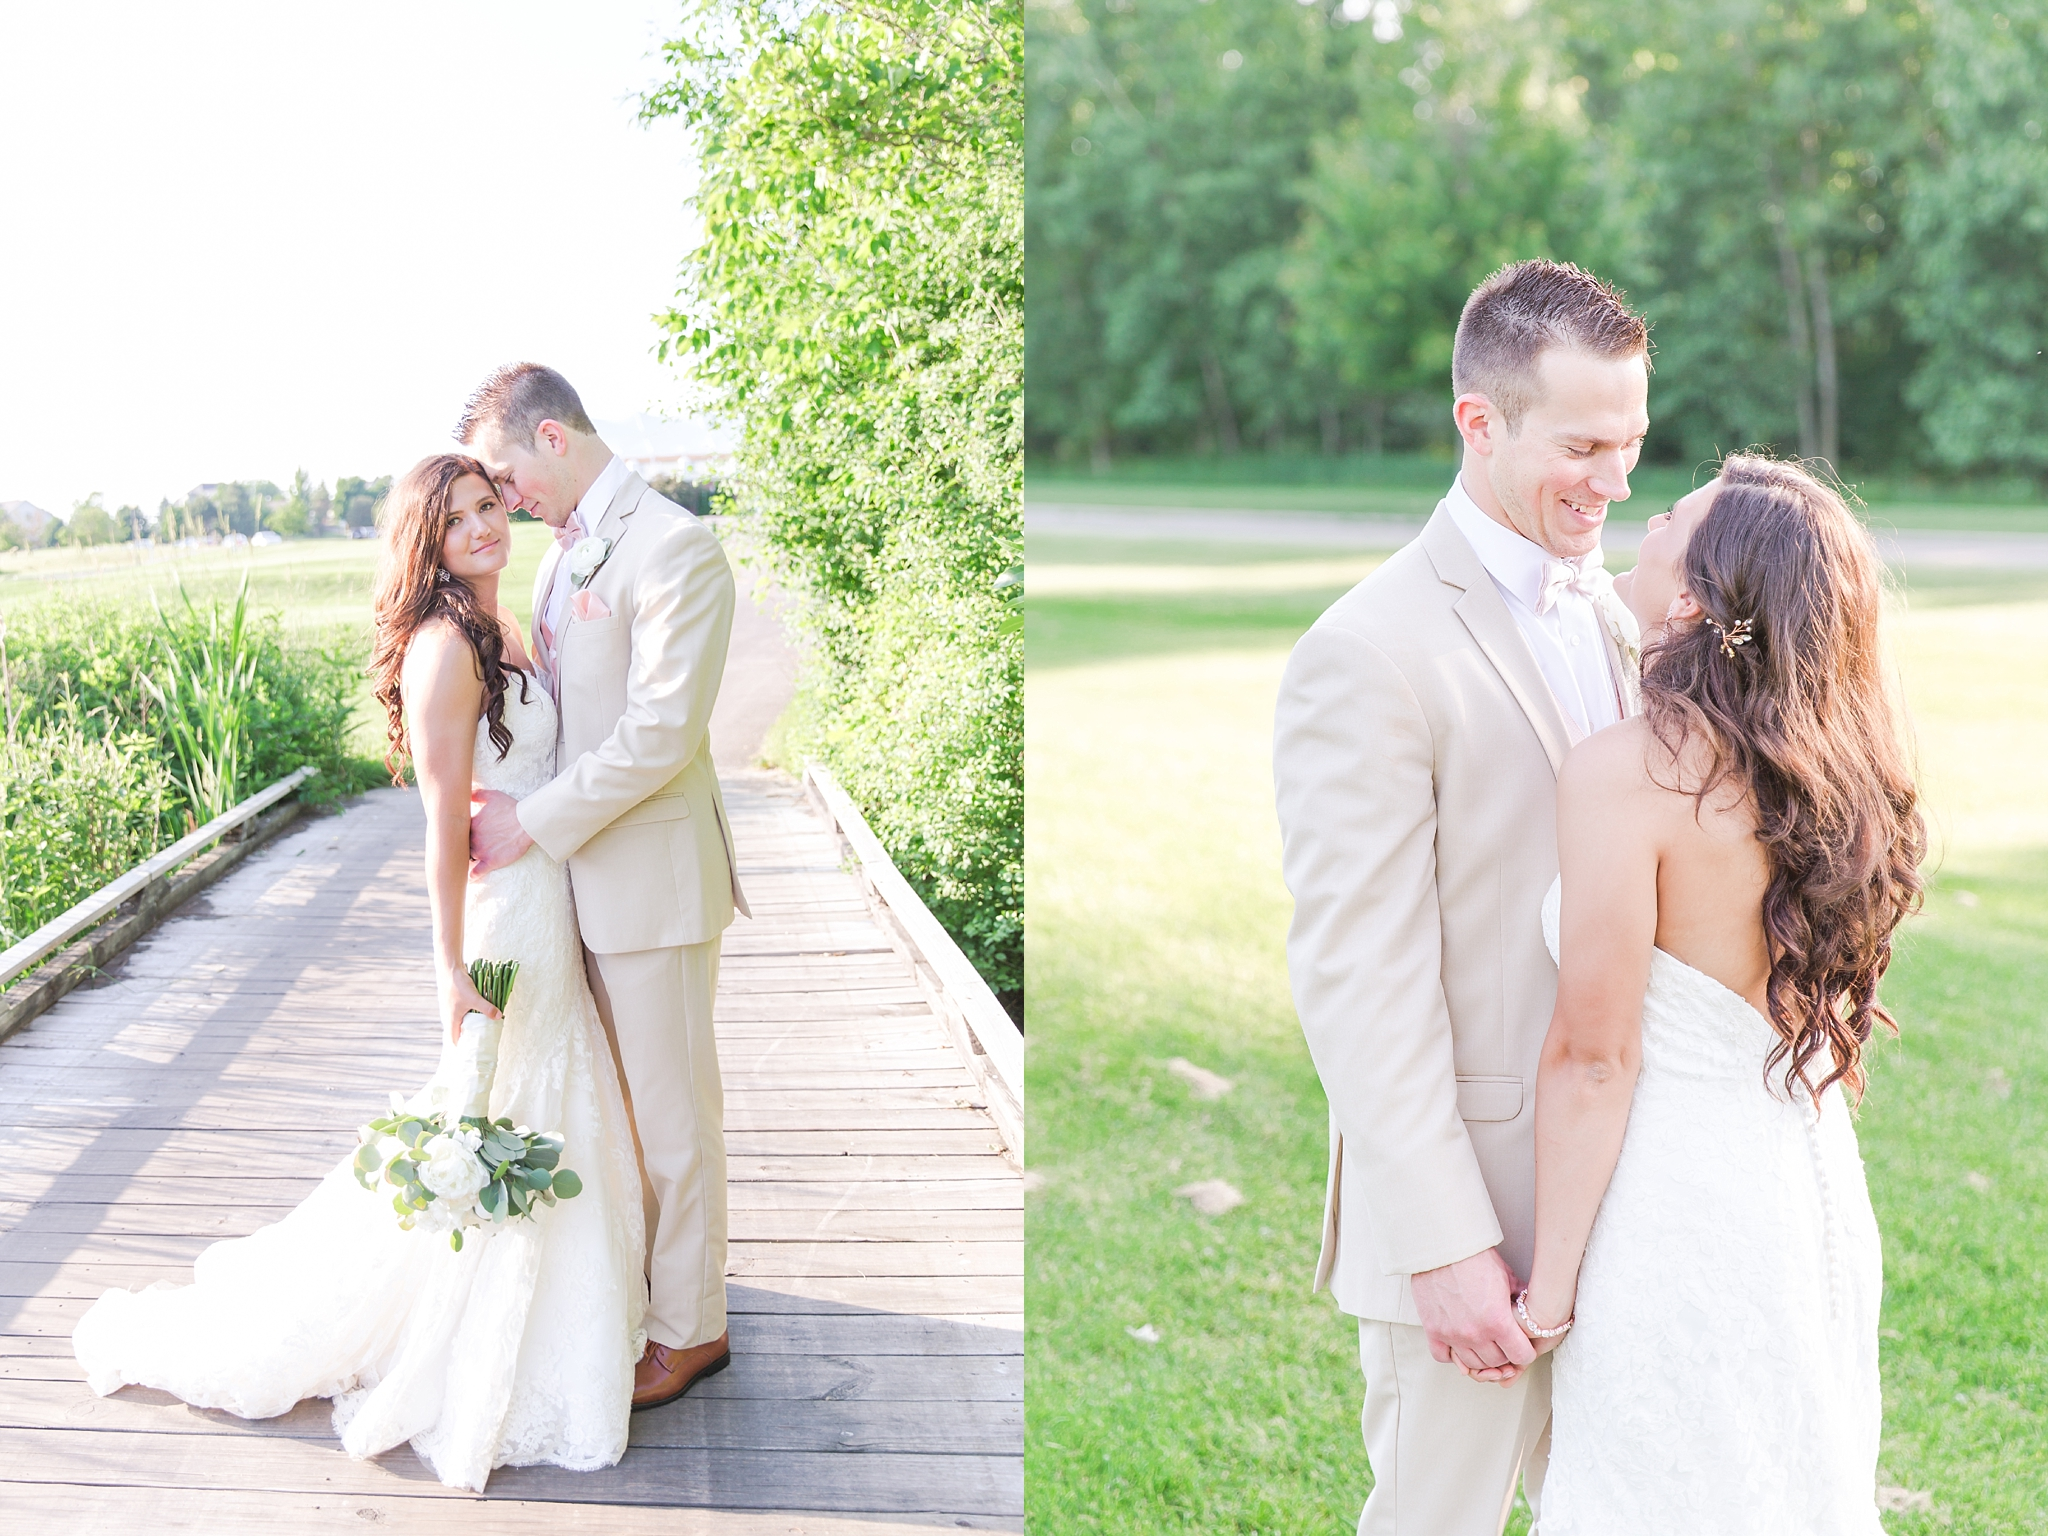 candid-timeless-wedding-photos-at-the-captains-club-in-grand-blanc-michigan-by-courtney-carolyn-photography_0058.jpg